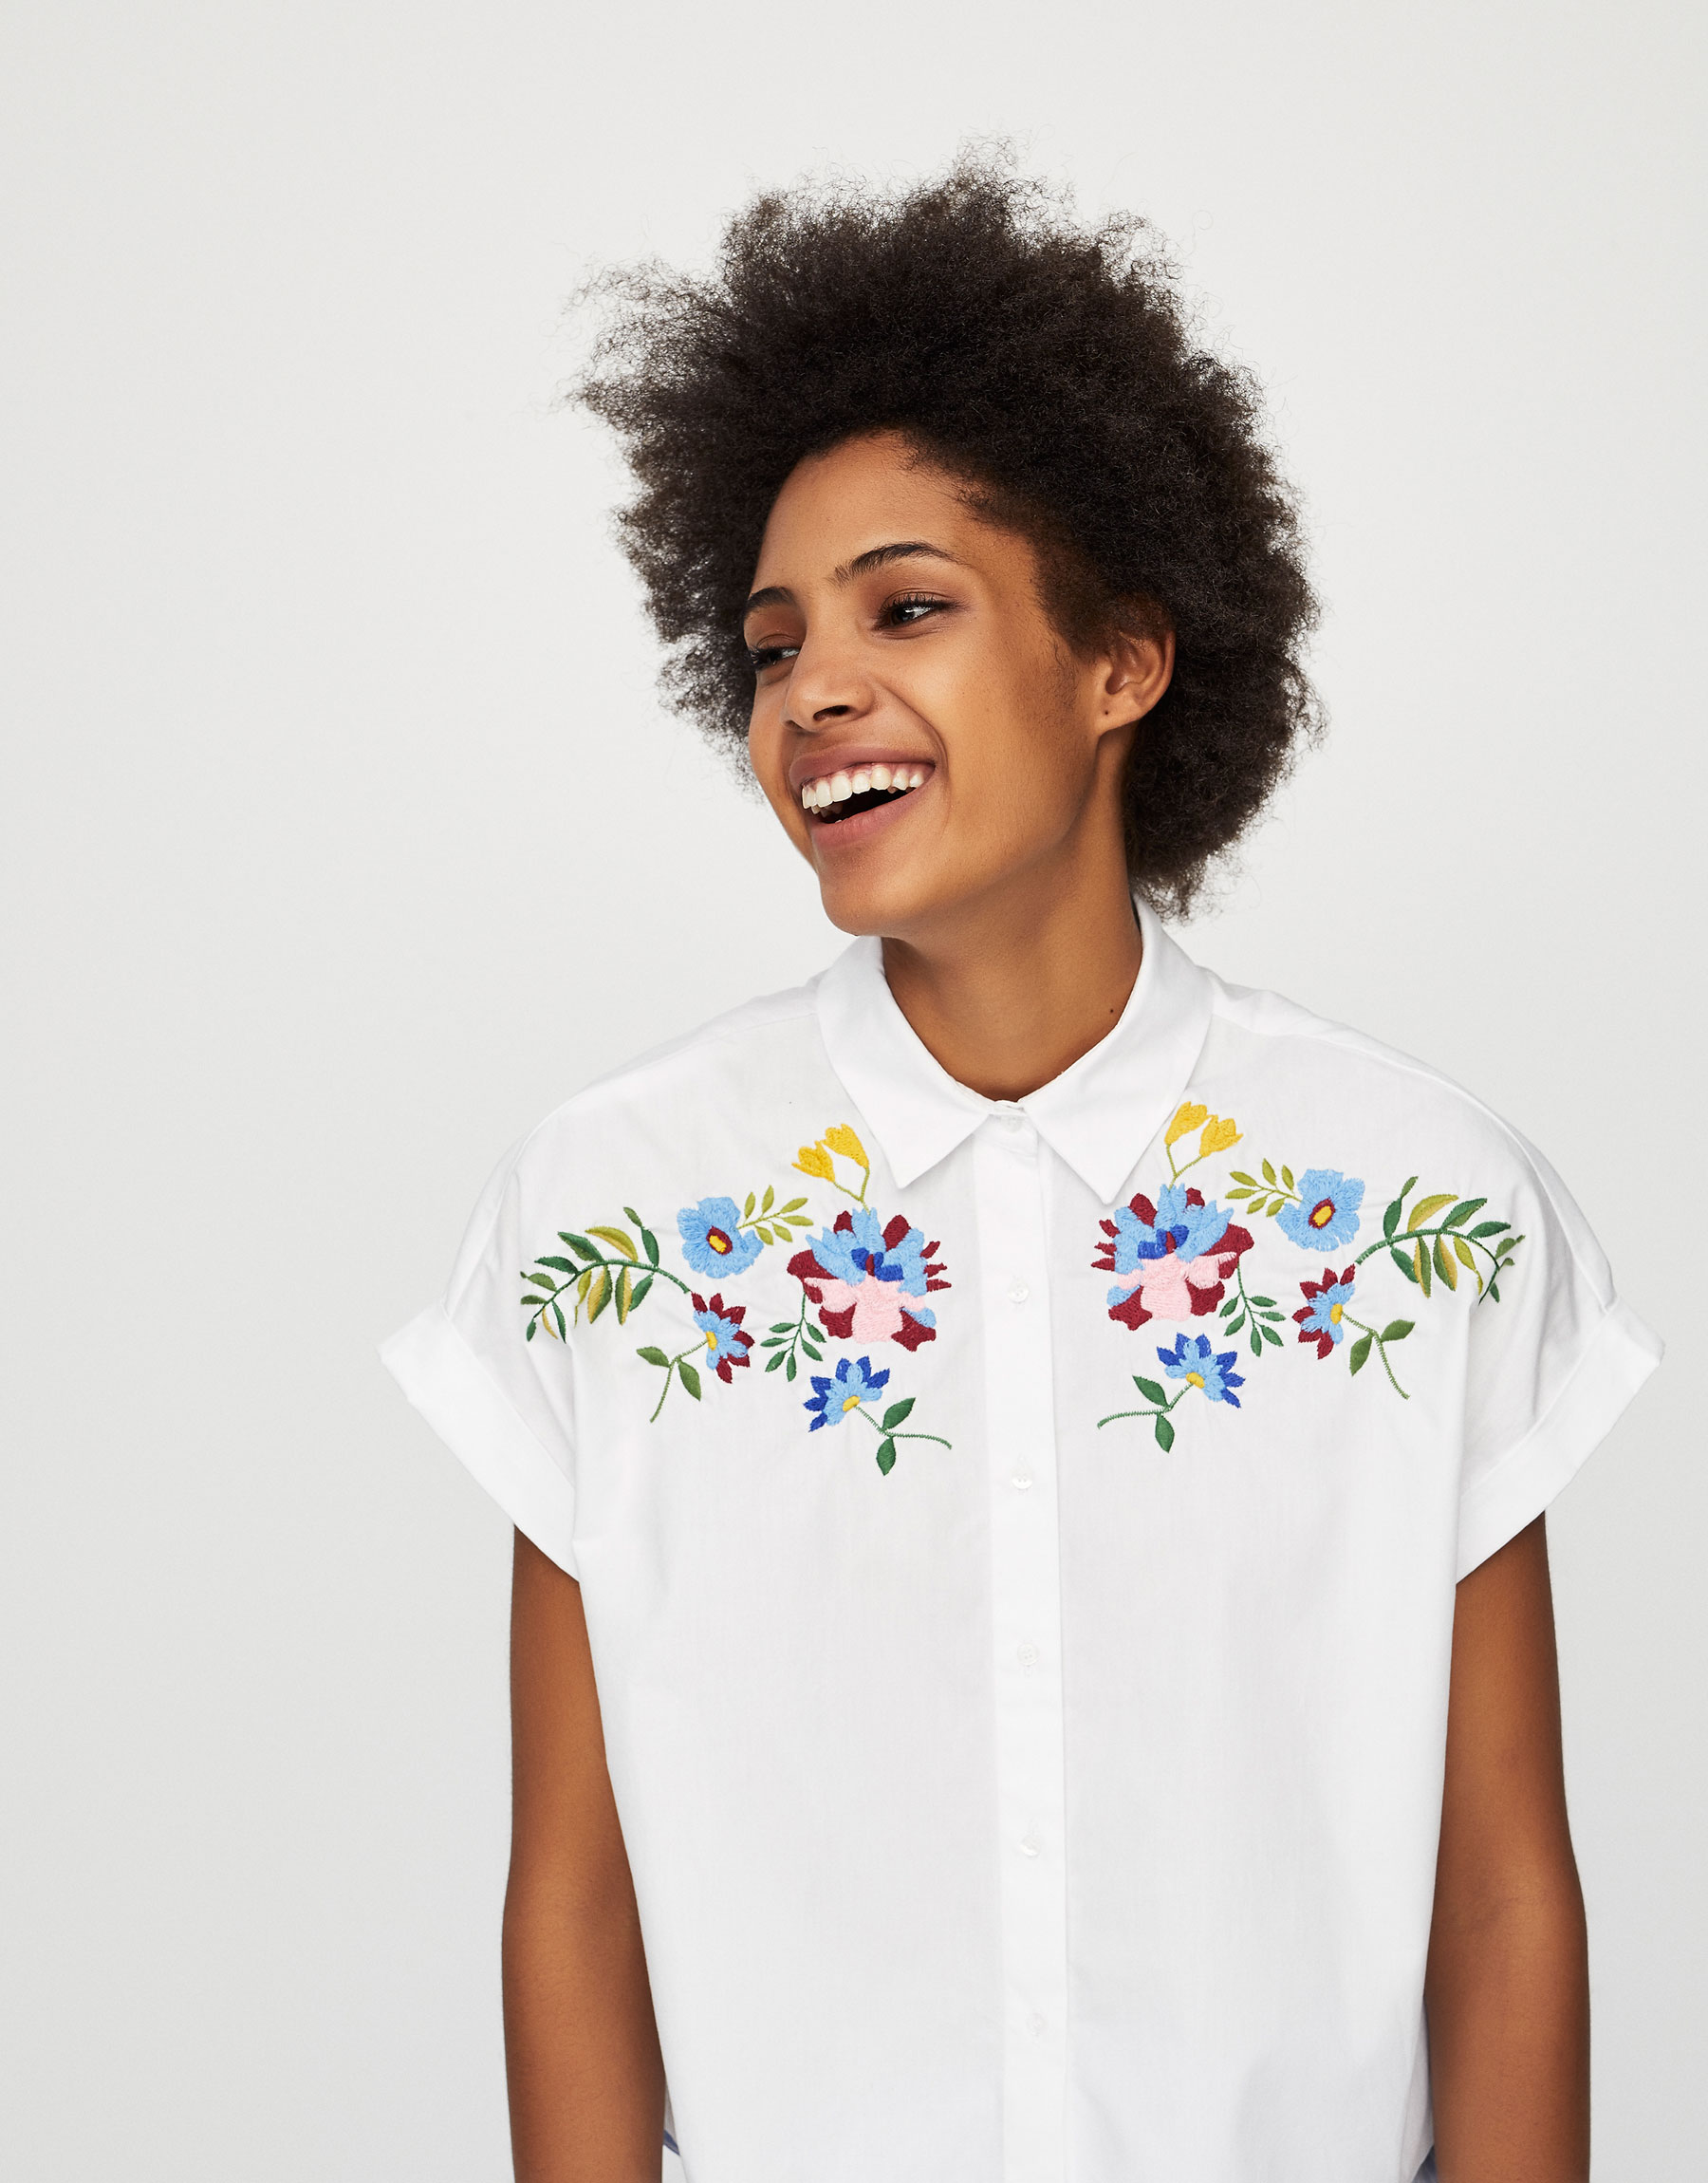 Short sleeve shirt with floral embroidery